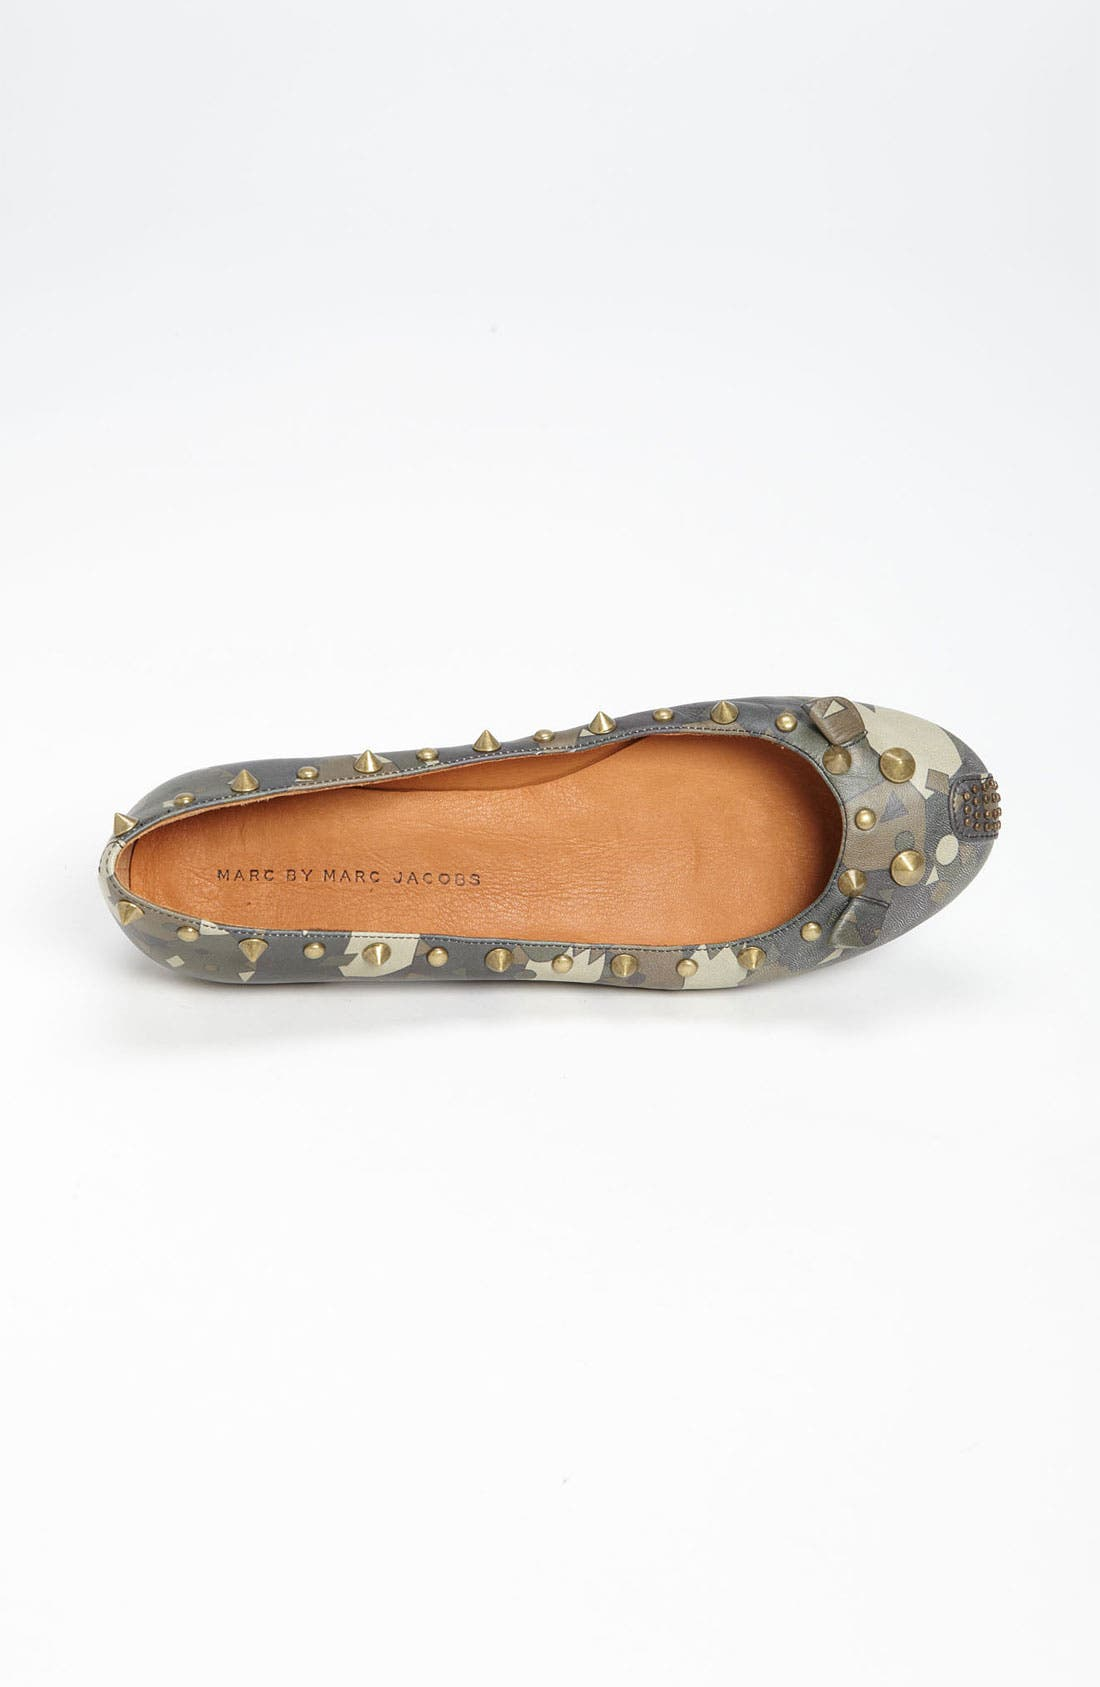 MARC BY MARC JACOBS 'Mouse' Ballerina Flat,                             Alternate thumbnail 2, color,                             357